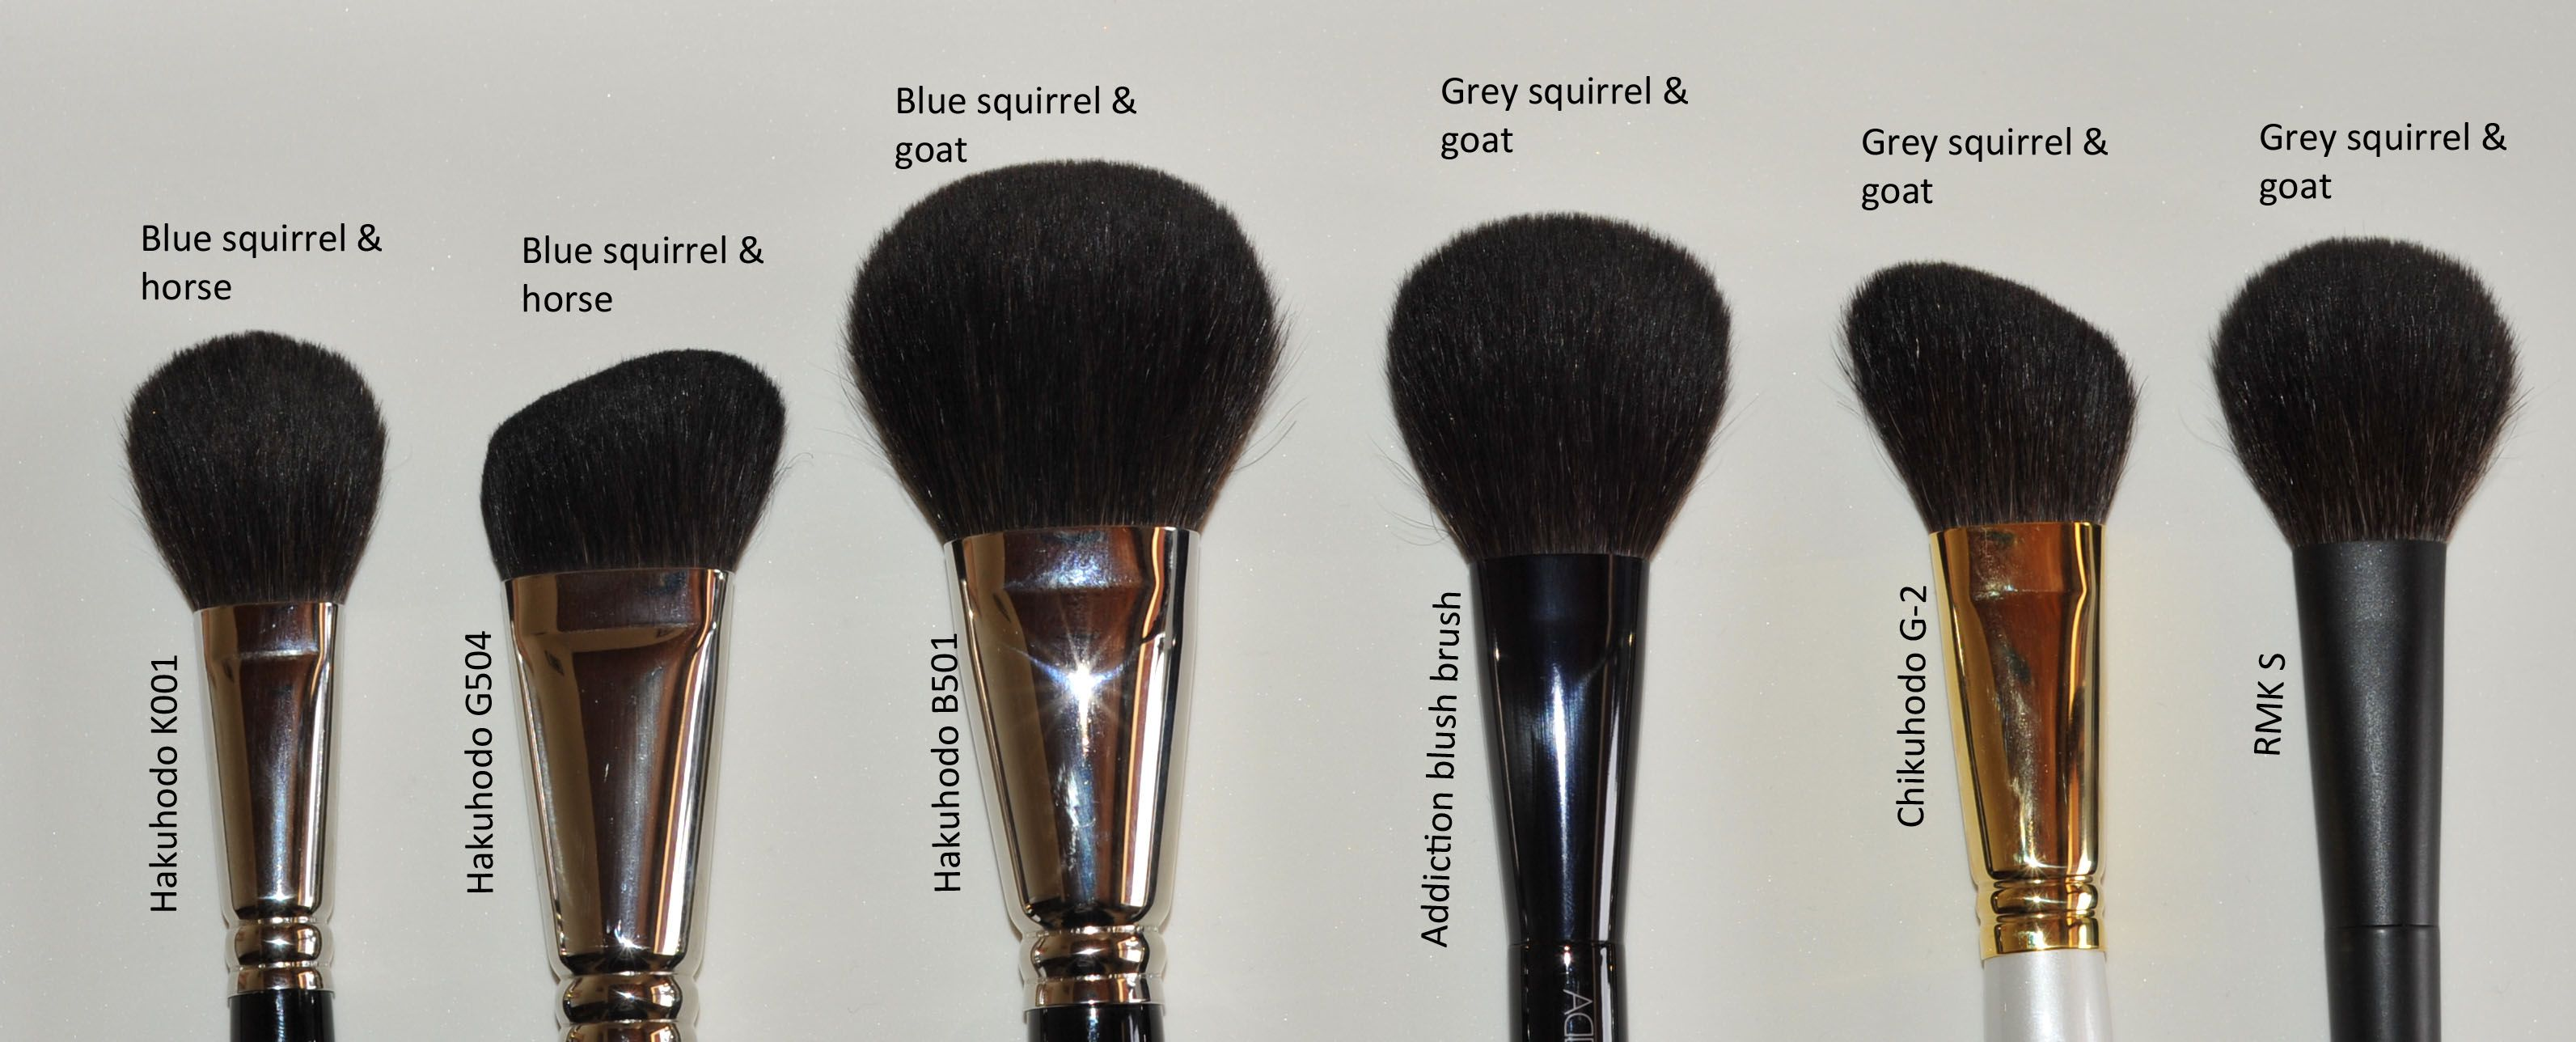 Fantastic blog post on different types of brushes made